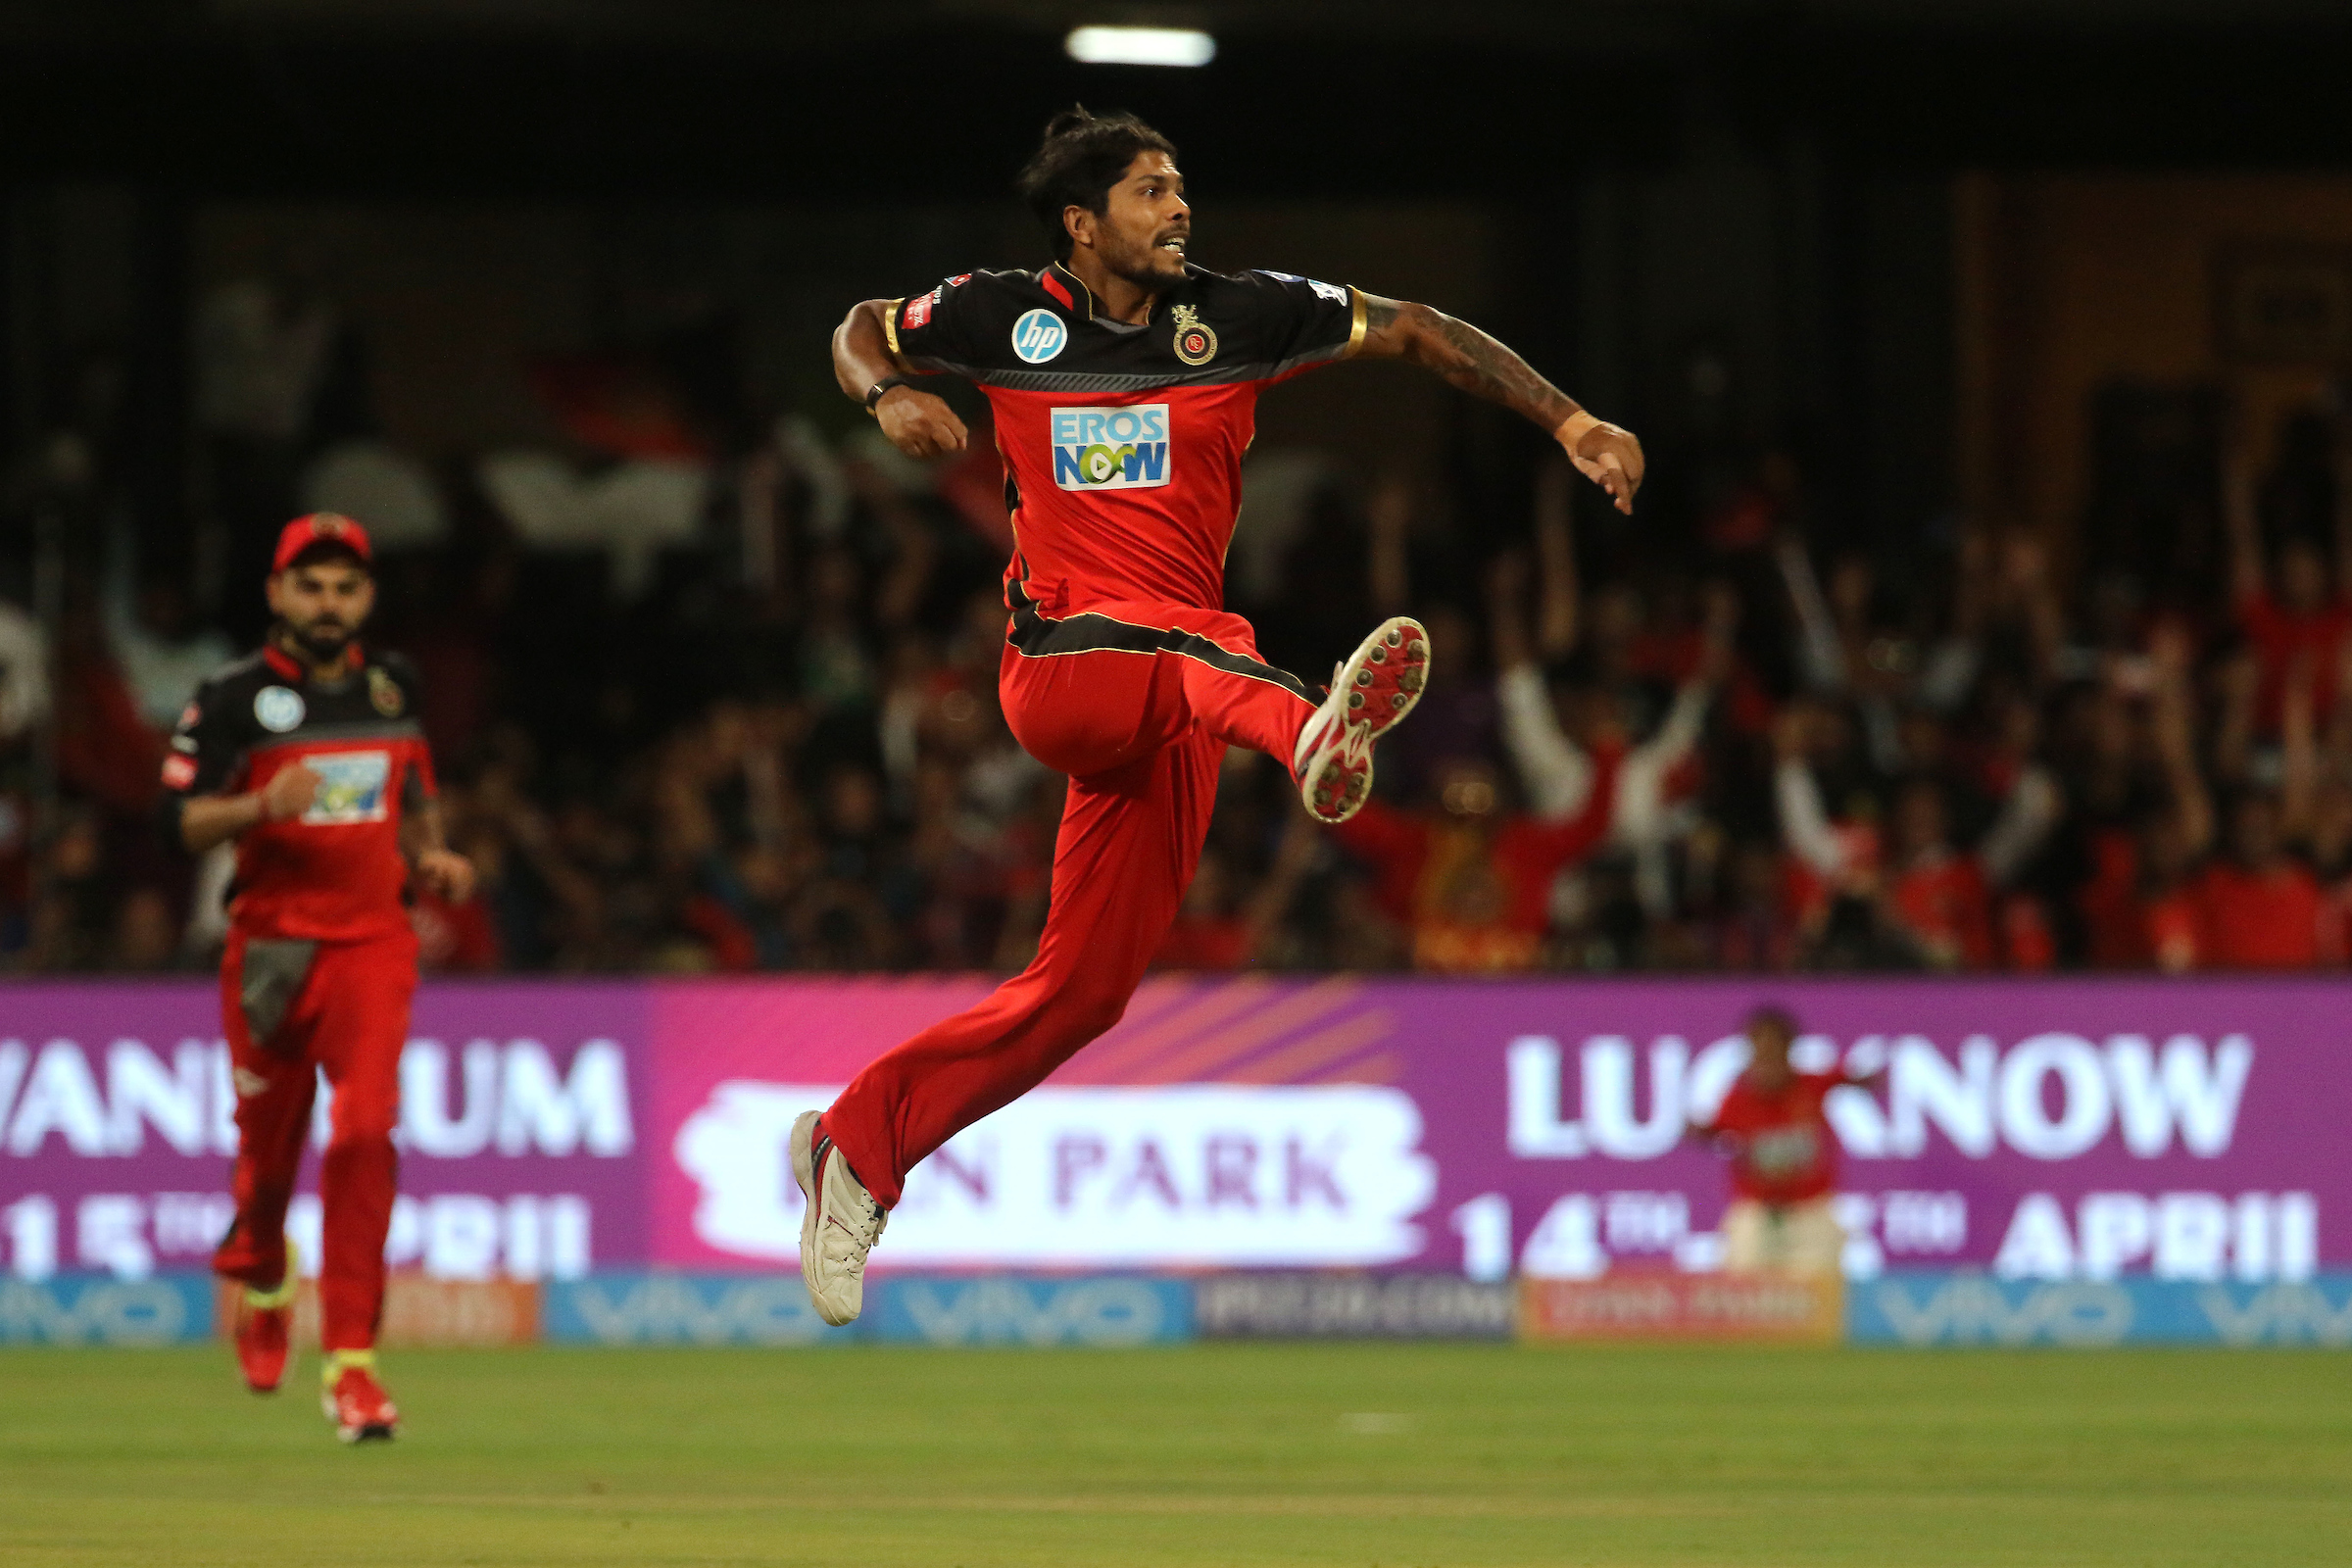 Umesh Yadav's effort not only turned the tide in RCB's favour, but also earned him his first IPL Man of the match award since 2015. Photo: Sportzpics/IPL